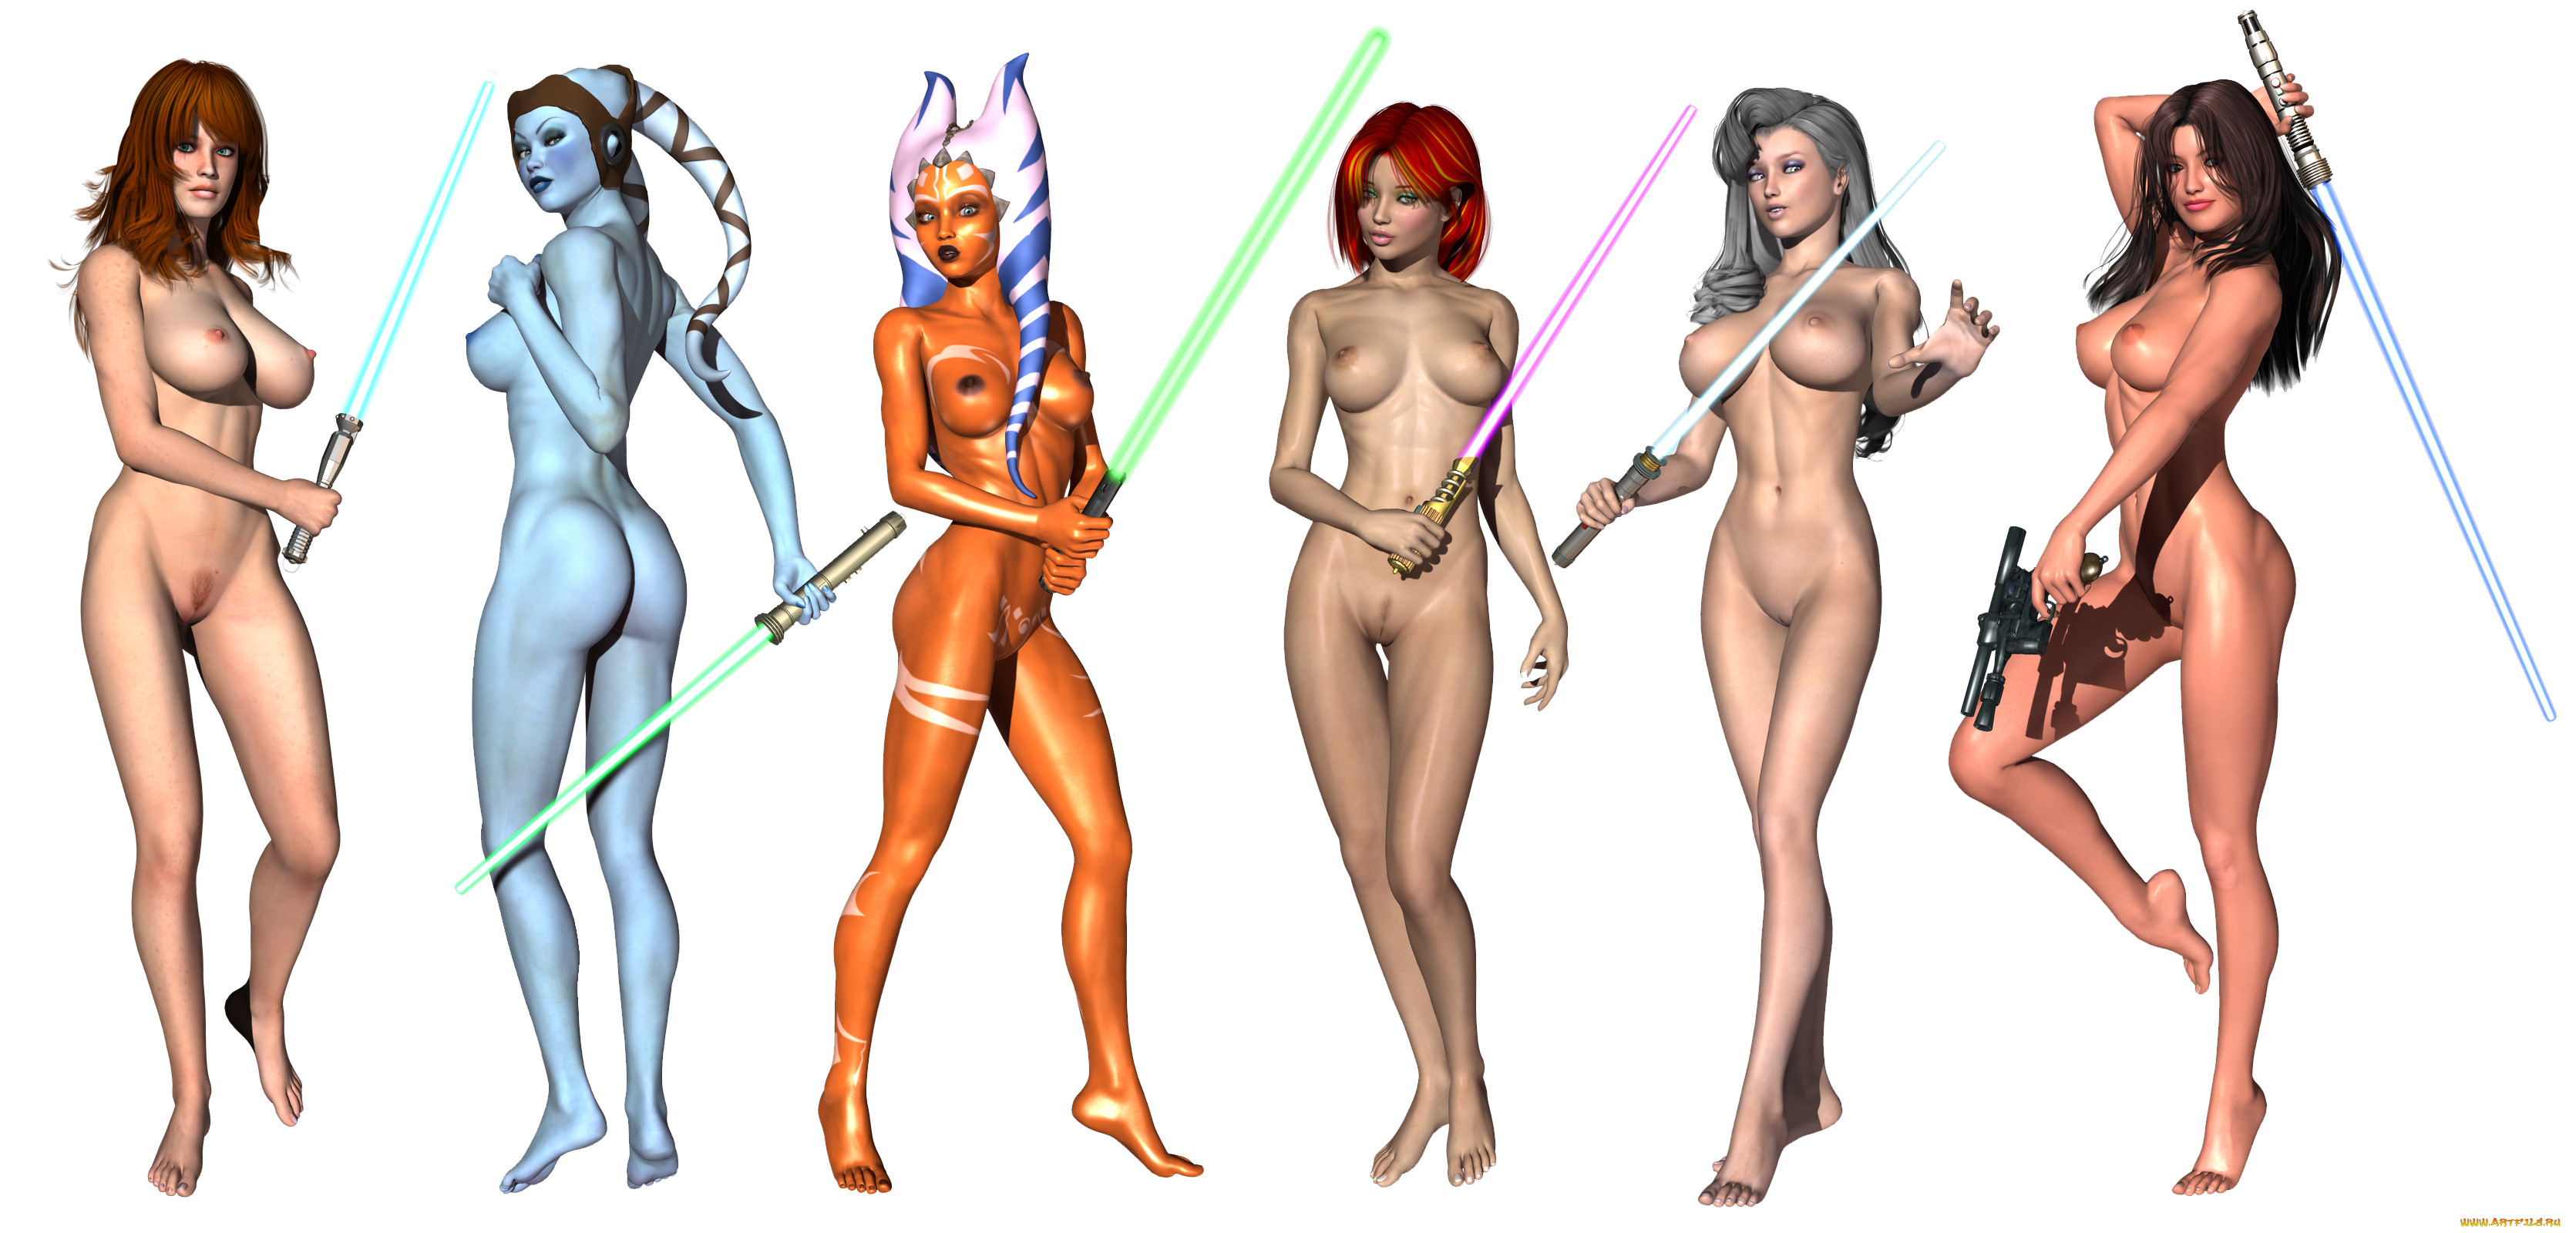 Hot jedi naked nsfw pic